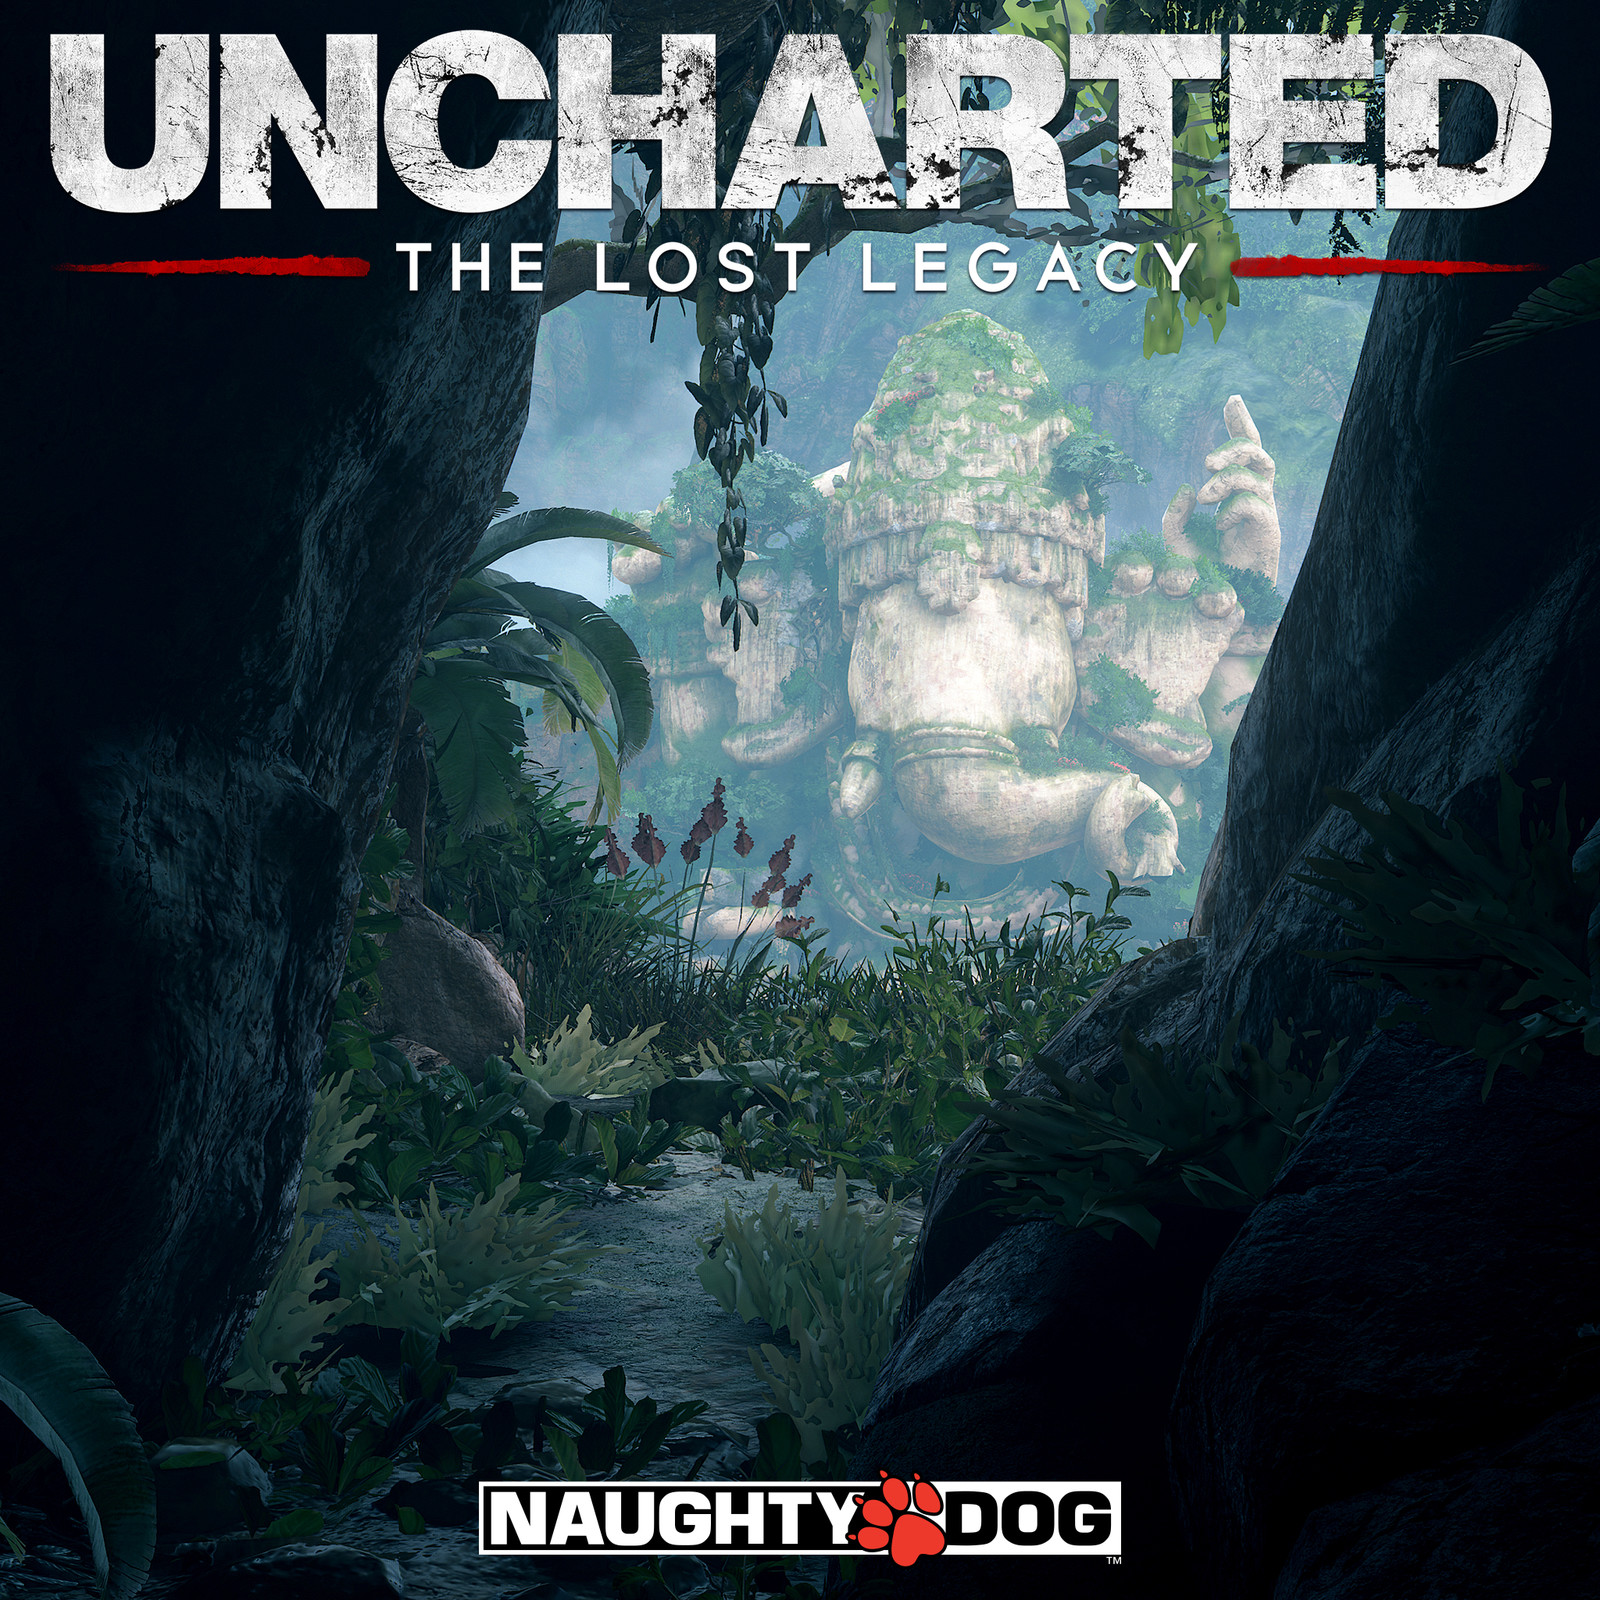 Uncharted The Lost Legacy - Ganesh - city of Halebidu - overcast